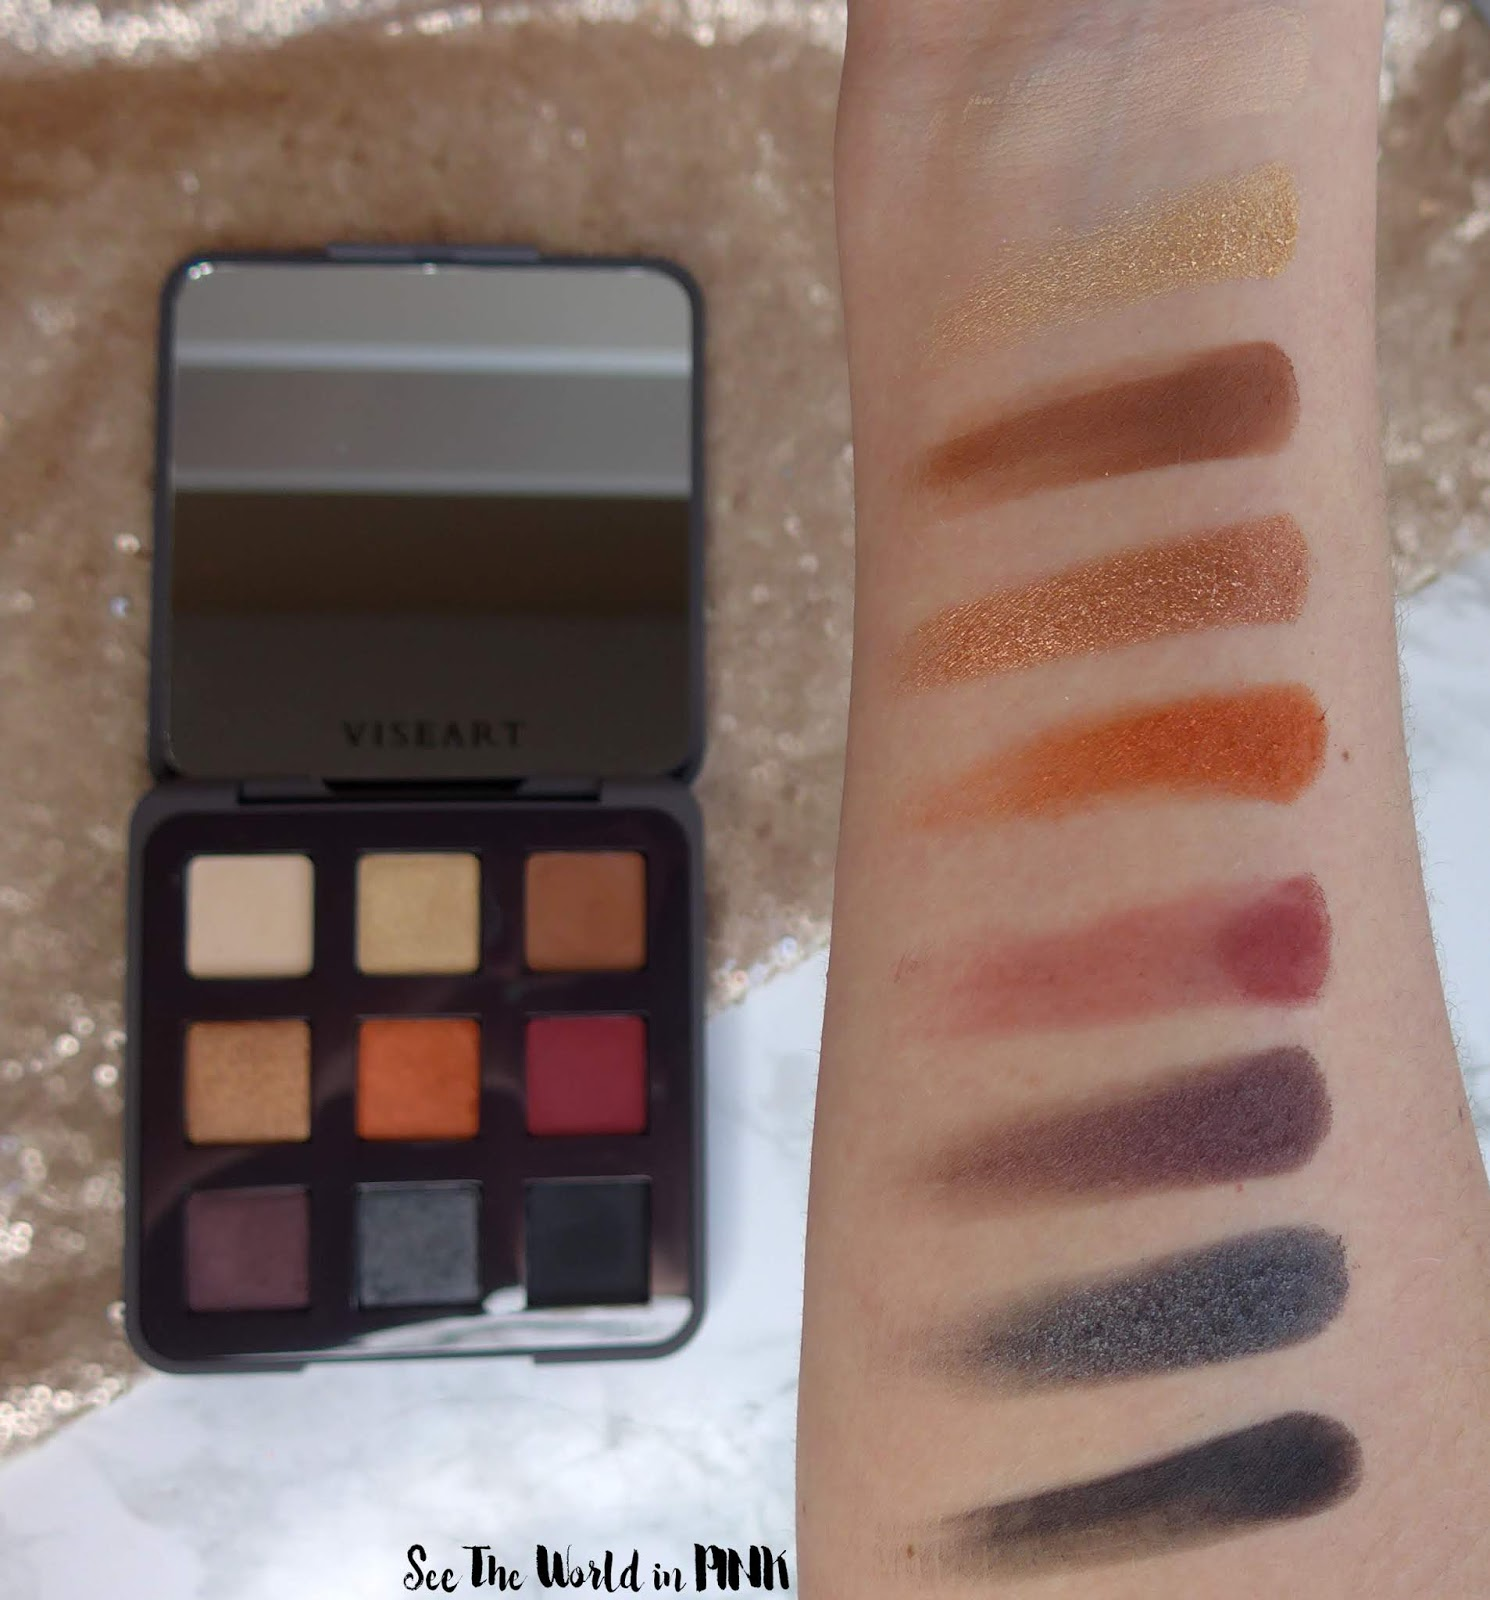 Viseart Golden Hour Eyeshadow Palette - 3 Looks, Swatches, and Review